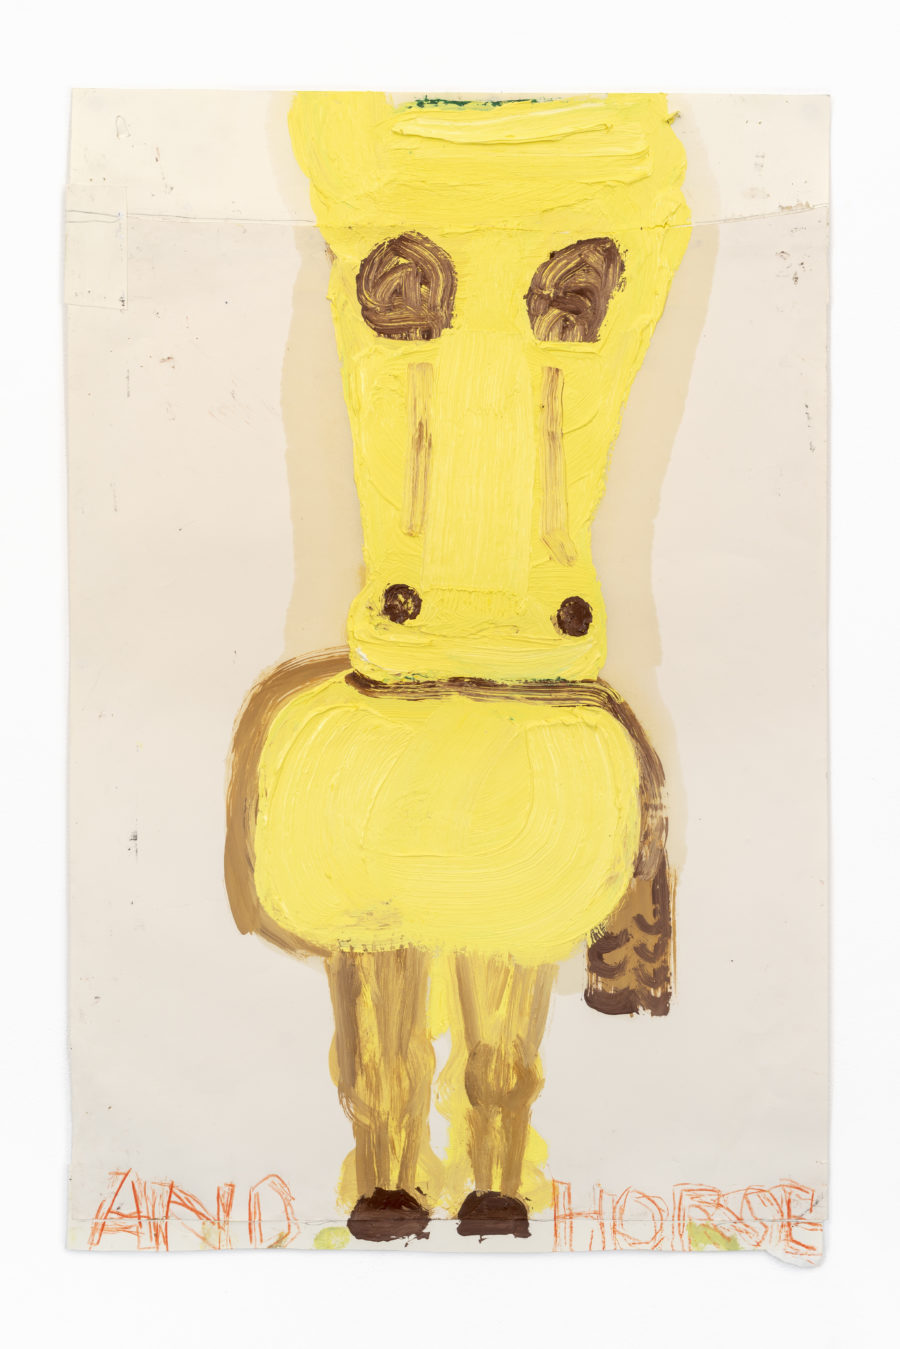 Yellow-Horse-I-2018-Oil-coloured-pencil-and-collage-on-paper-92-x-59.7-cm-Rose-Wylie-900x1349.jpg